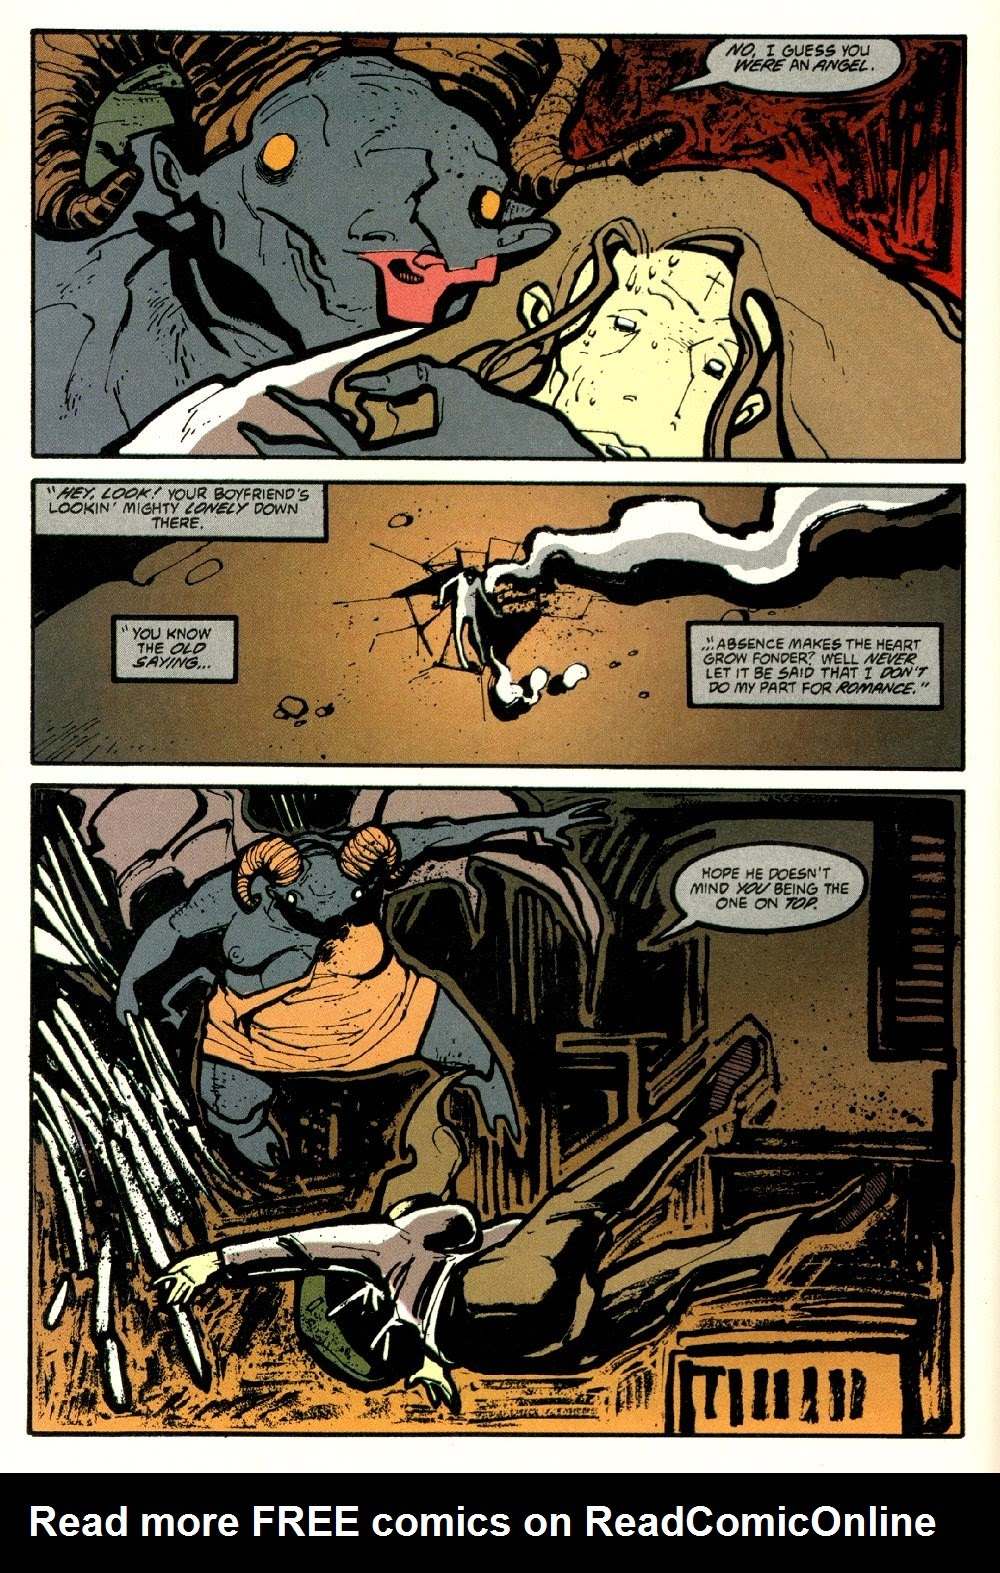 Read online Ted McKeever's Metropol comic -  Issue #8 - 22